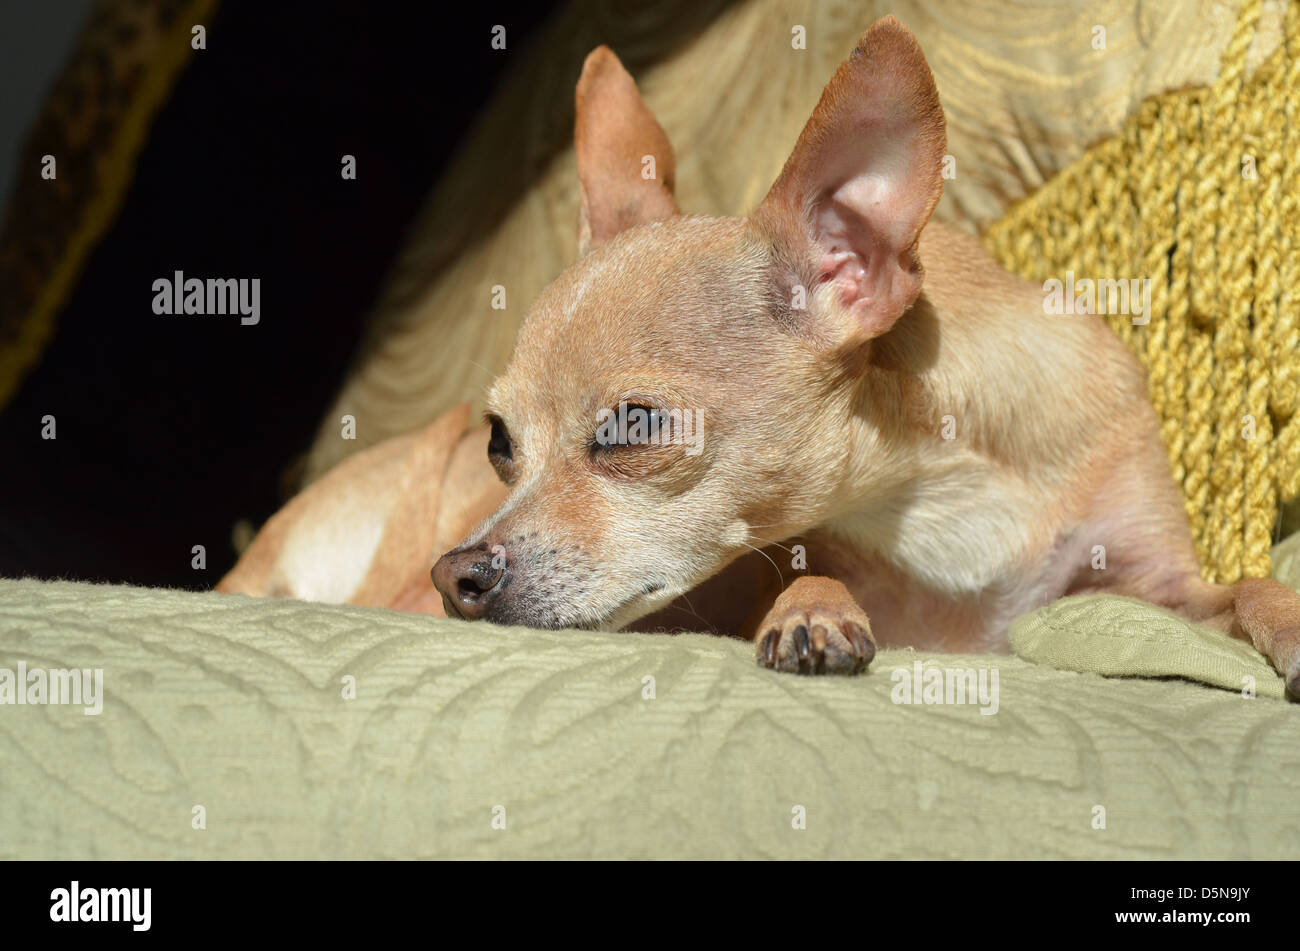 A tan color Chihuahua with eyes open and ears up, relaxes in a comfy spot. - Stock Image